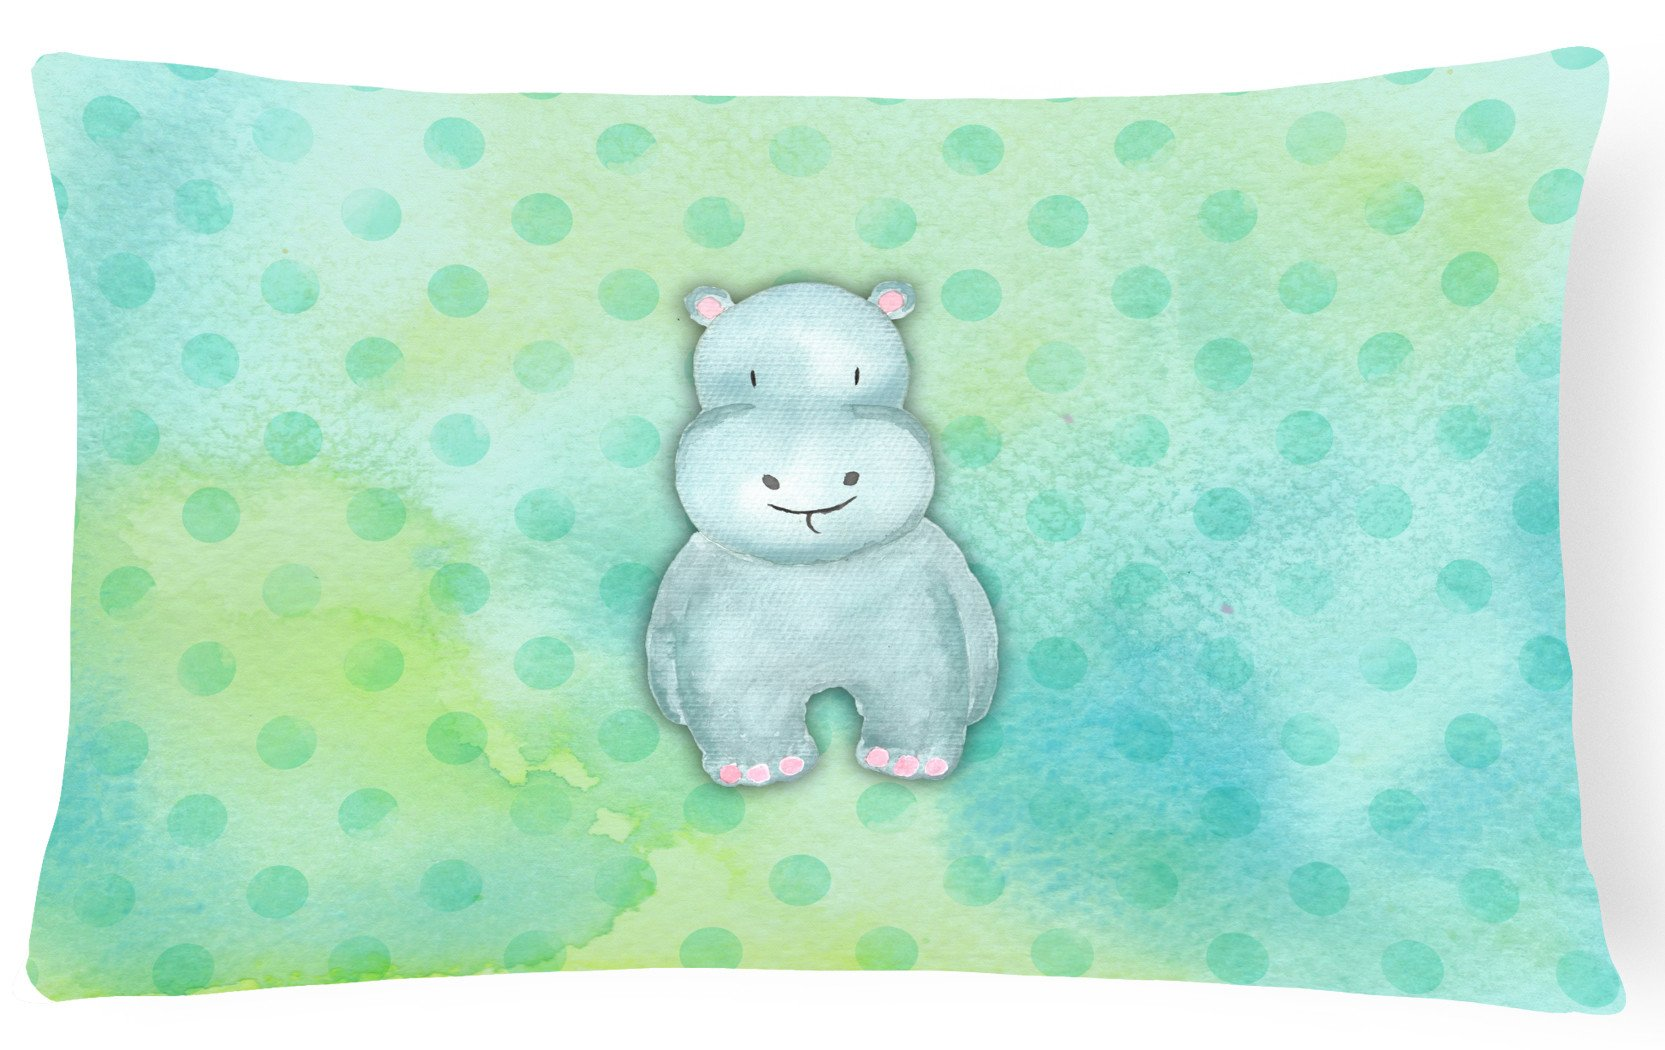 Polkadot Hippopotamus Watercolor Canvas Fabric Decorative Pillow BB7389PW1216 by Caroline's Treasures